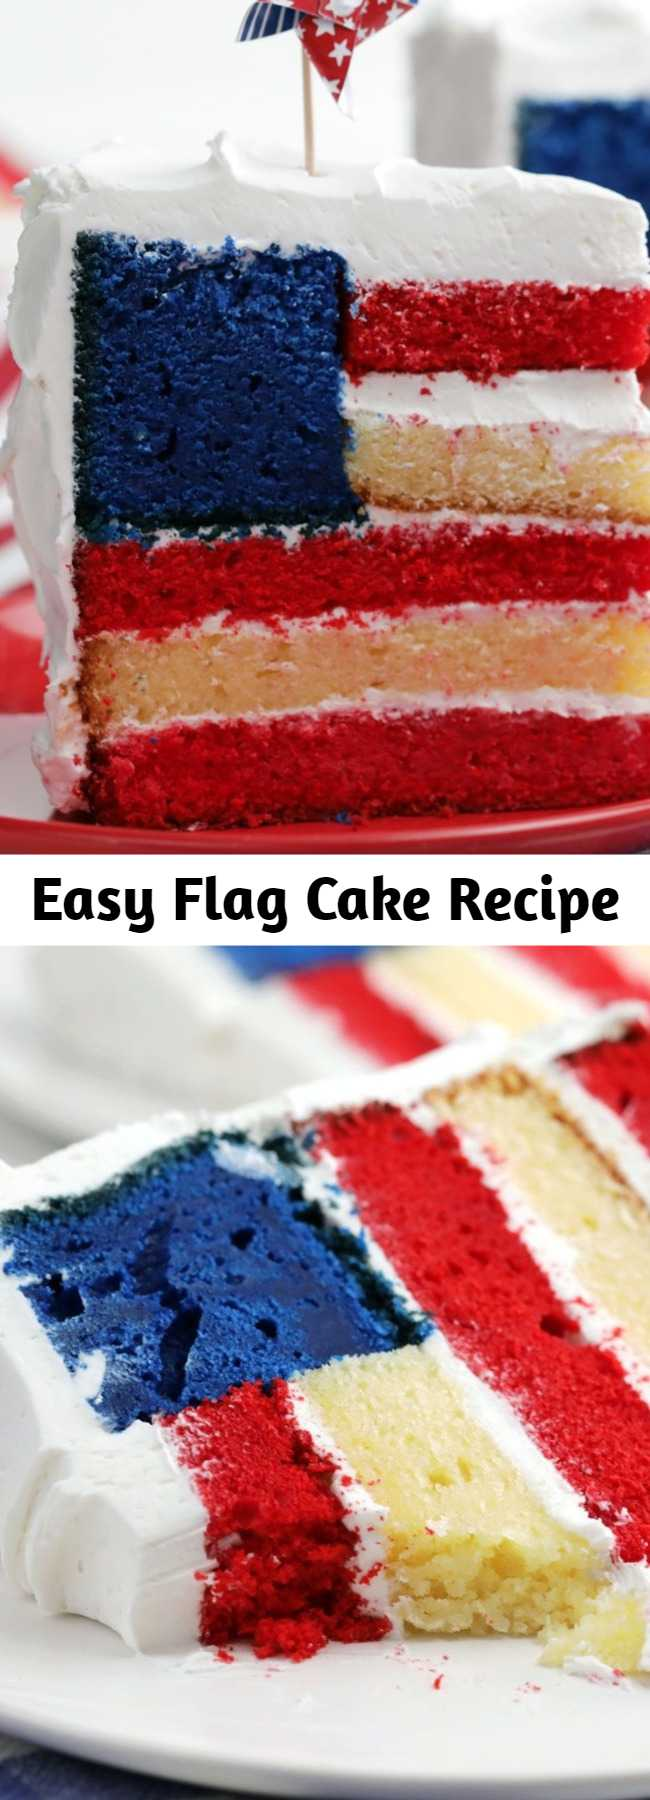 Don't be intimidated by the layers of tender red, white and blue cake though, the directions for preparing this cake are straightforward and the results are stunning. Serve up patriotism by the slice.